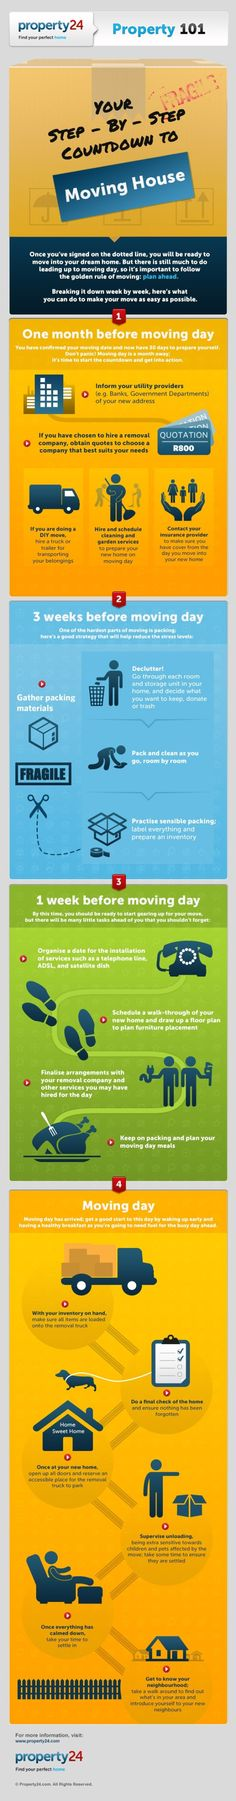 A step-by-step countdown to moving house - someday if we ever find the right house ::sigh::